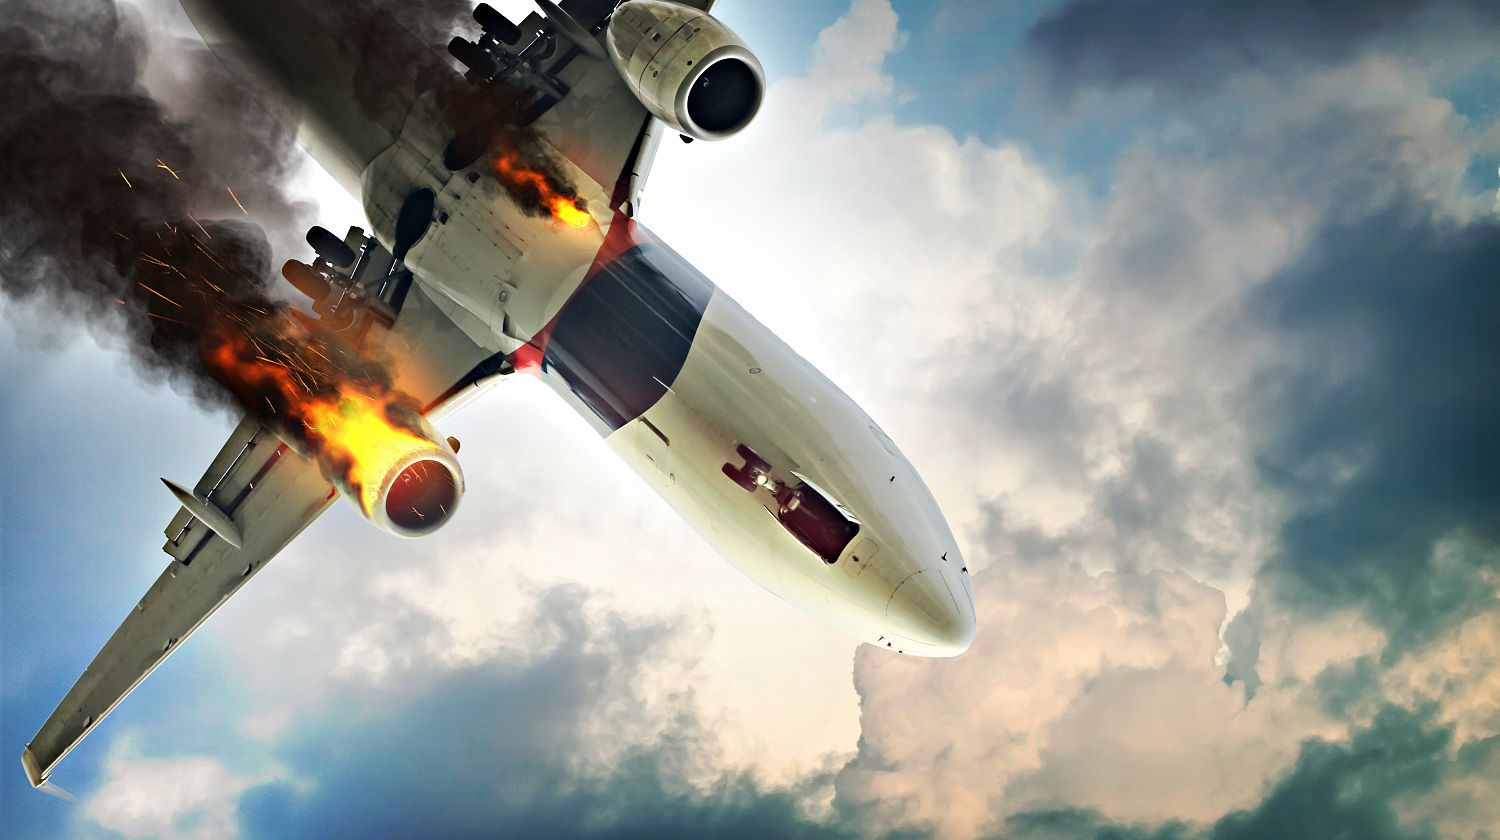 Featured   Flame of airplane engine   How To Survive A Plane Crash   Safety And Preparedness Tips